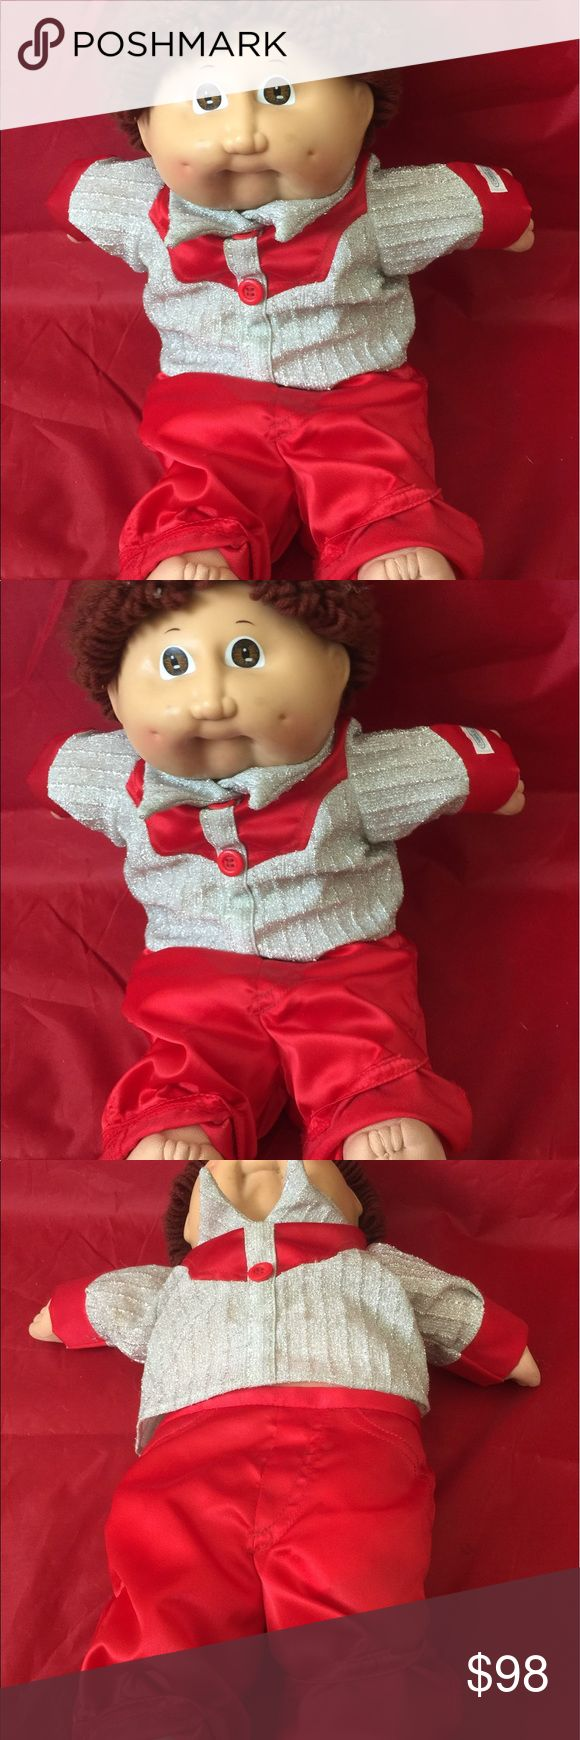 """CABBAGE PATCH KIDS 16"""" CLASSIC DOLL May I present a very pretty cabbage patch kid from the 18 the little boy in great condition for his age He has red  also he has red  and silver clothes. Made in Taiwan. cabbage patch kids Other"""